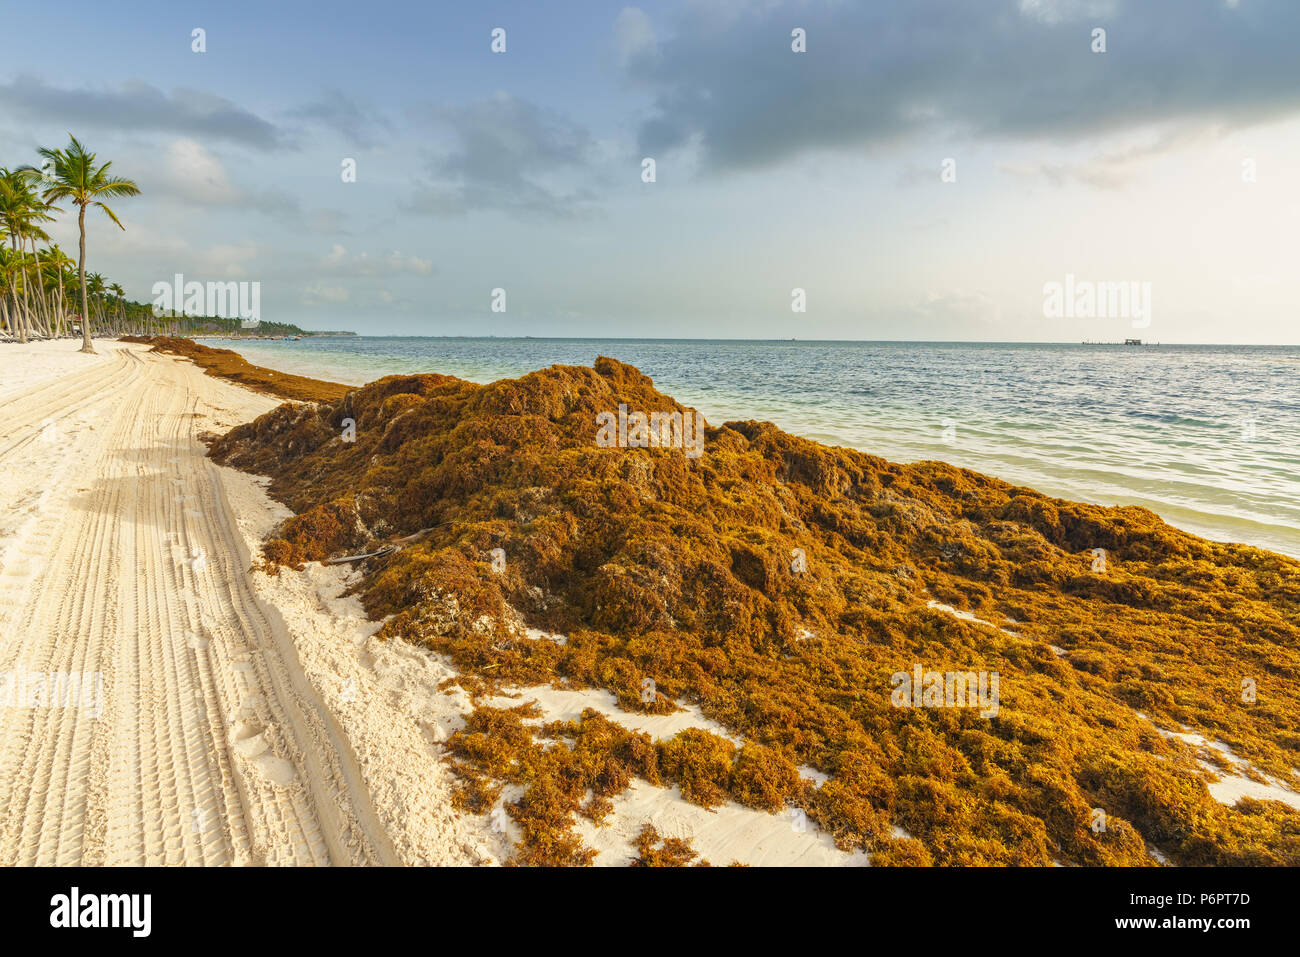 Sargassum Algae Stock Photos & Sargassum Algae Stock Images - Alamy